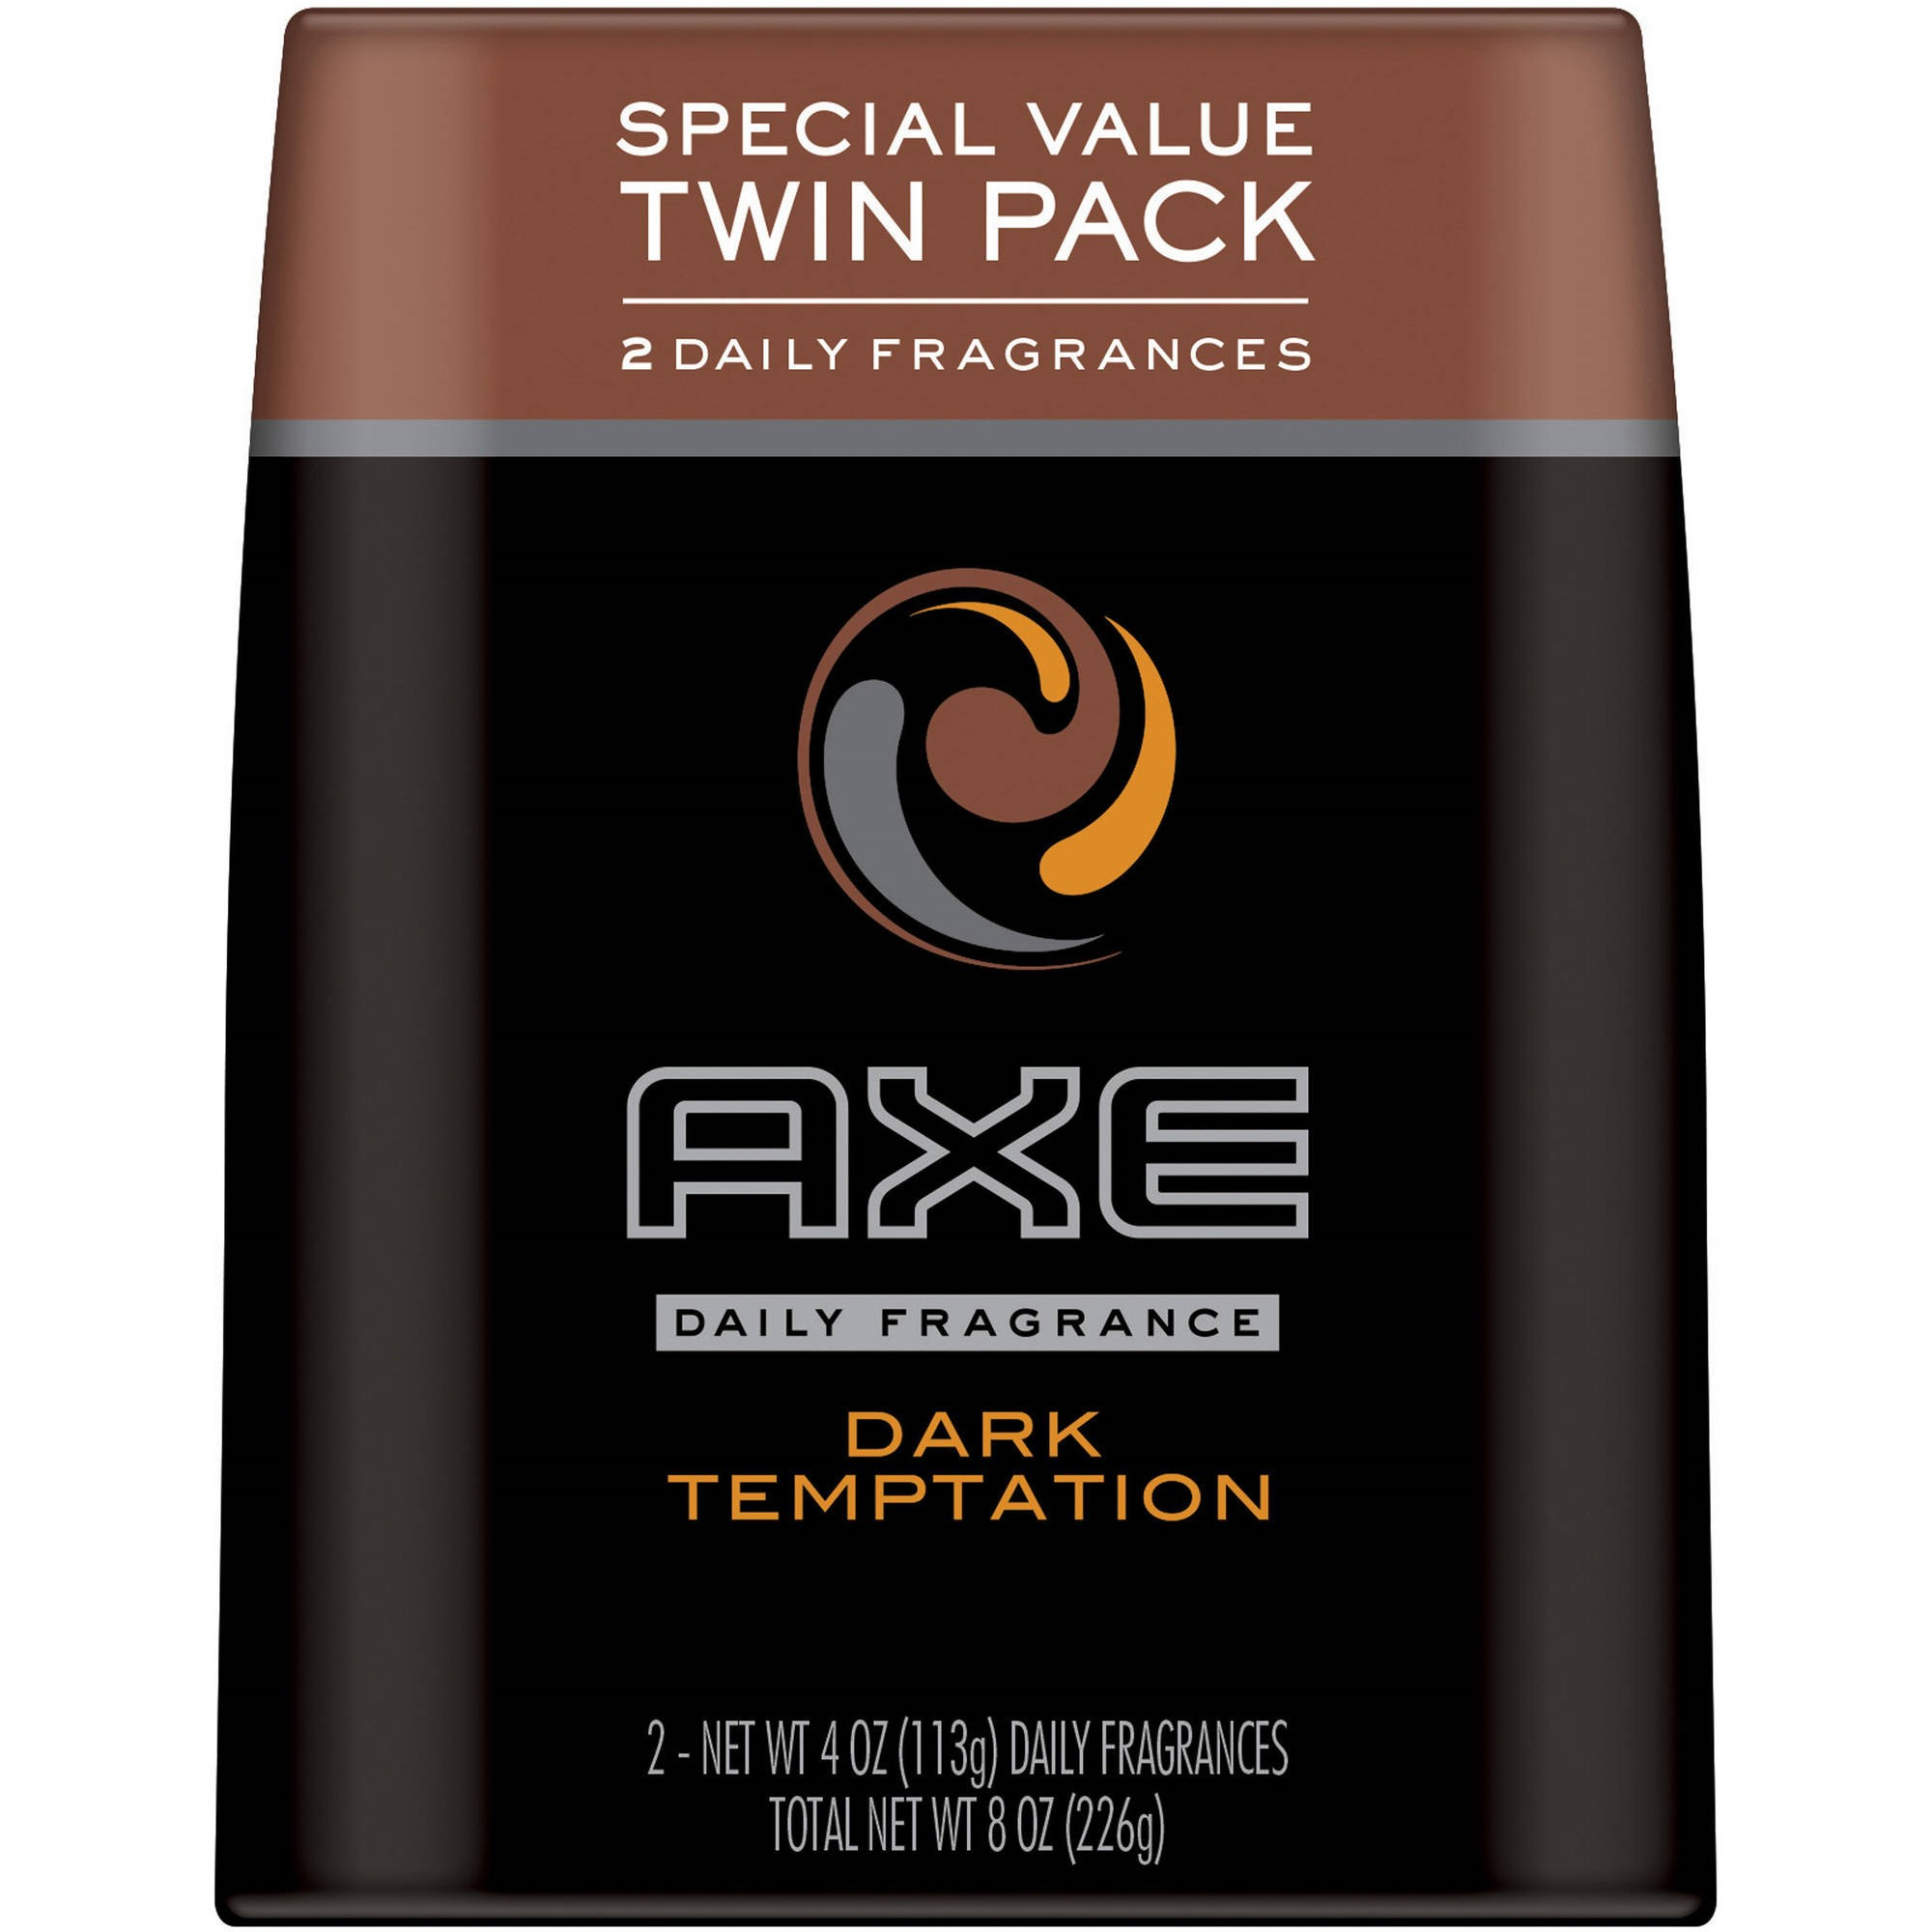 AXE Deodorant Bodyspray 2 Pack Dark Temptation,Twin Pack